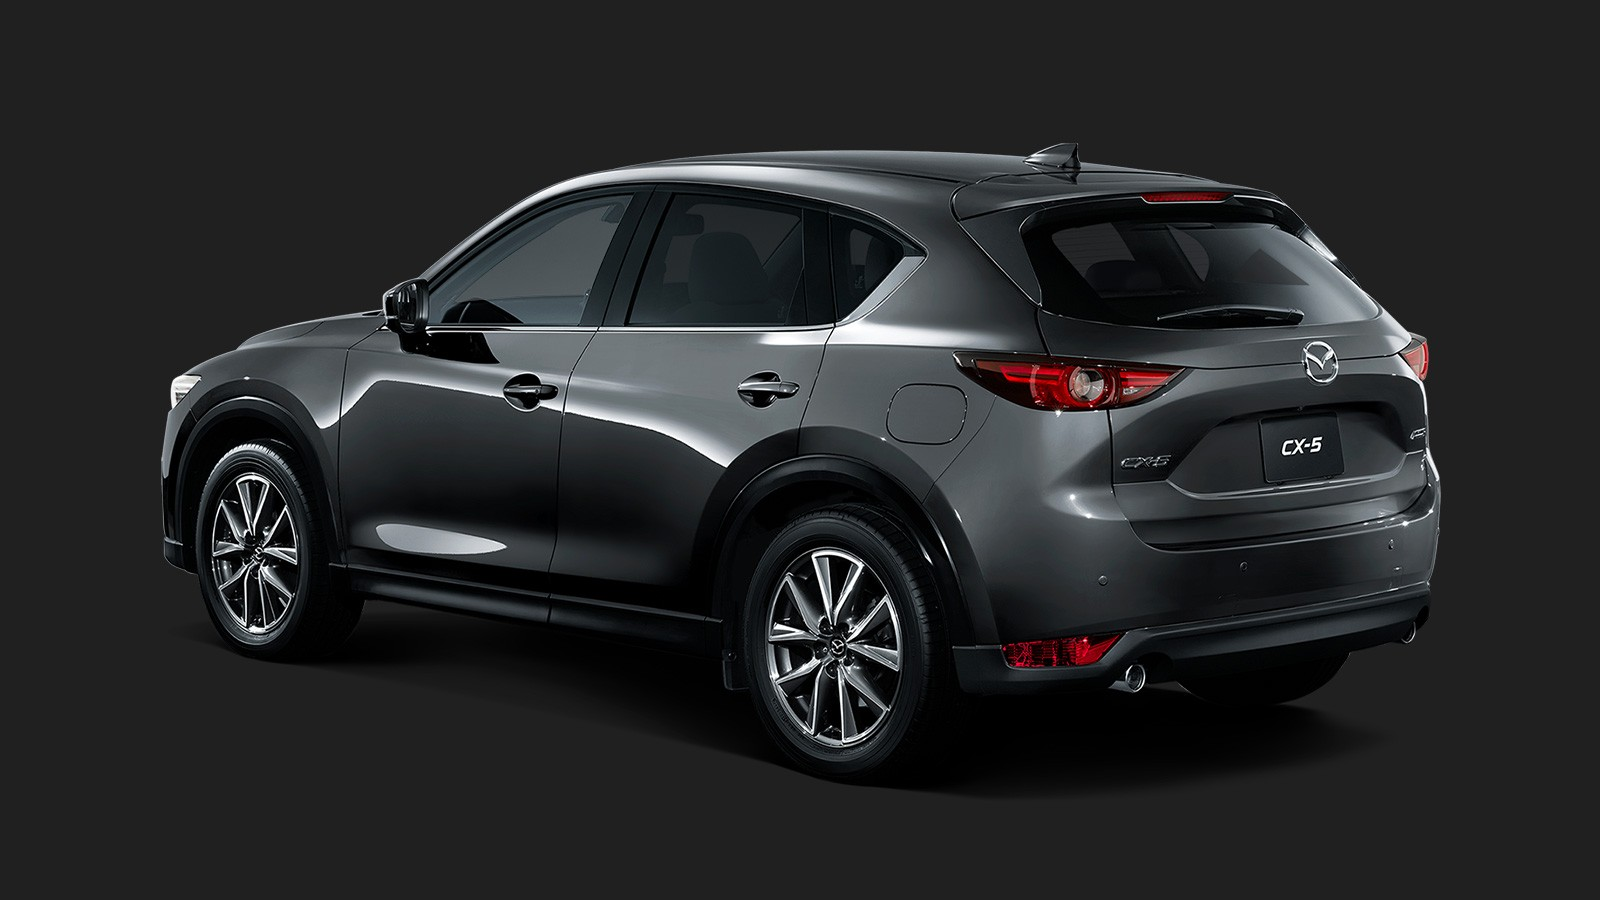 2017 mazda cx 5 specifications and prices revealed for. Black Bedroom Furniture Sets. Home Design Ideas